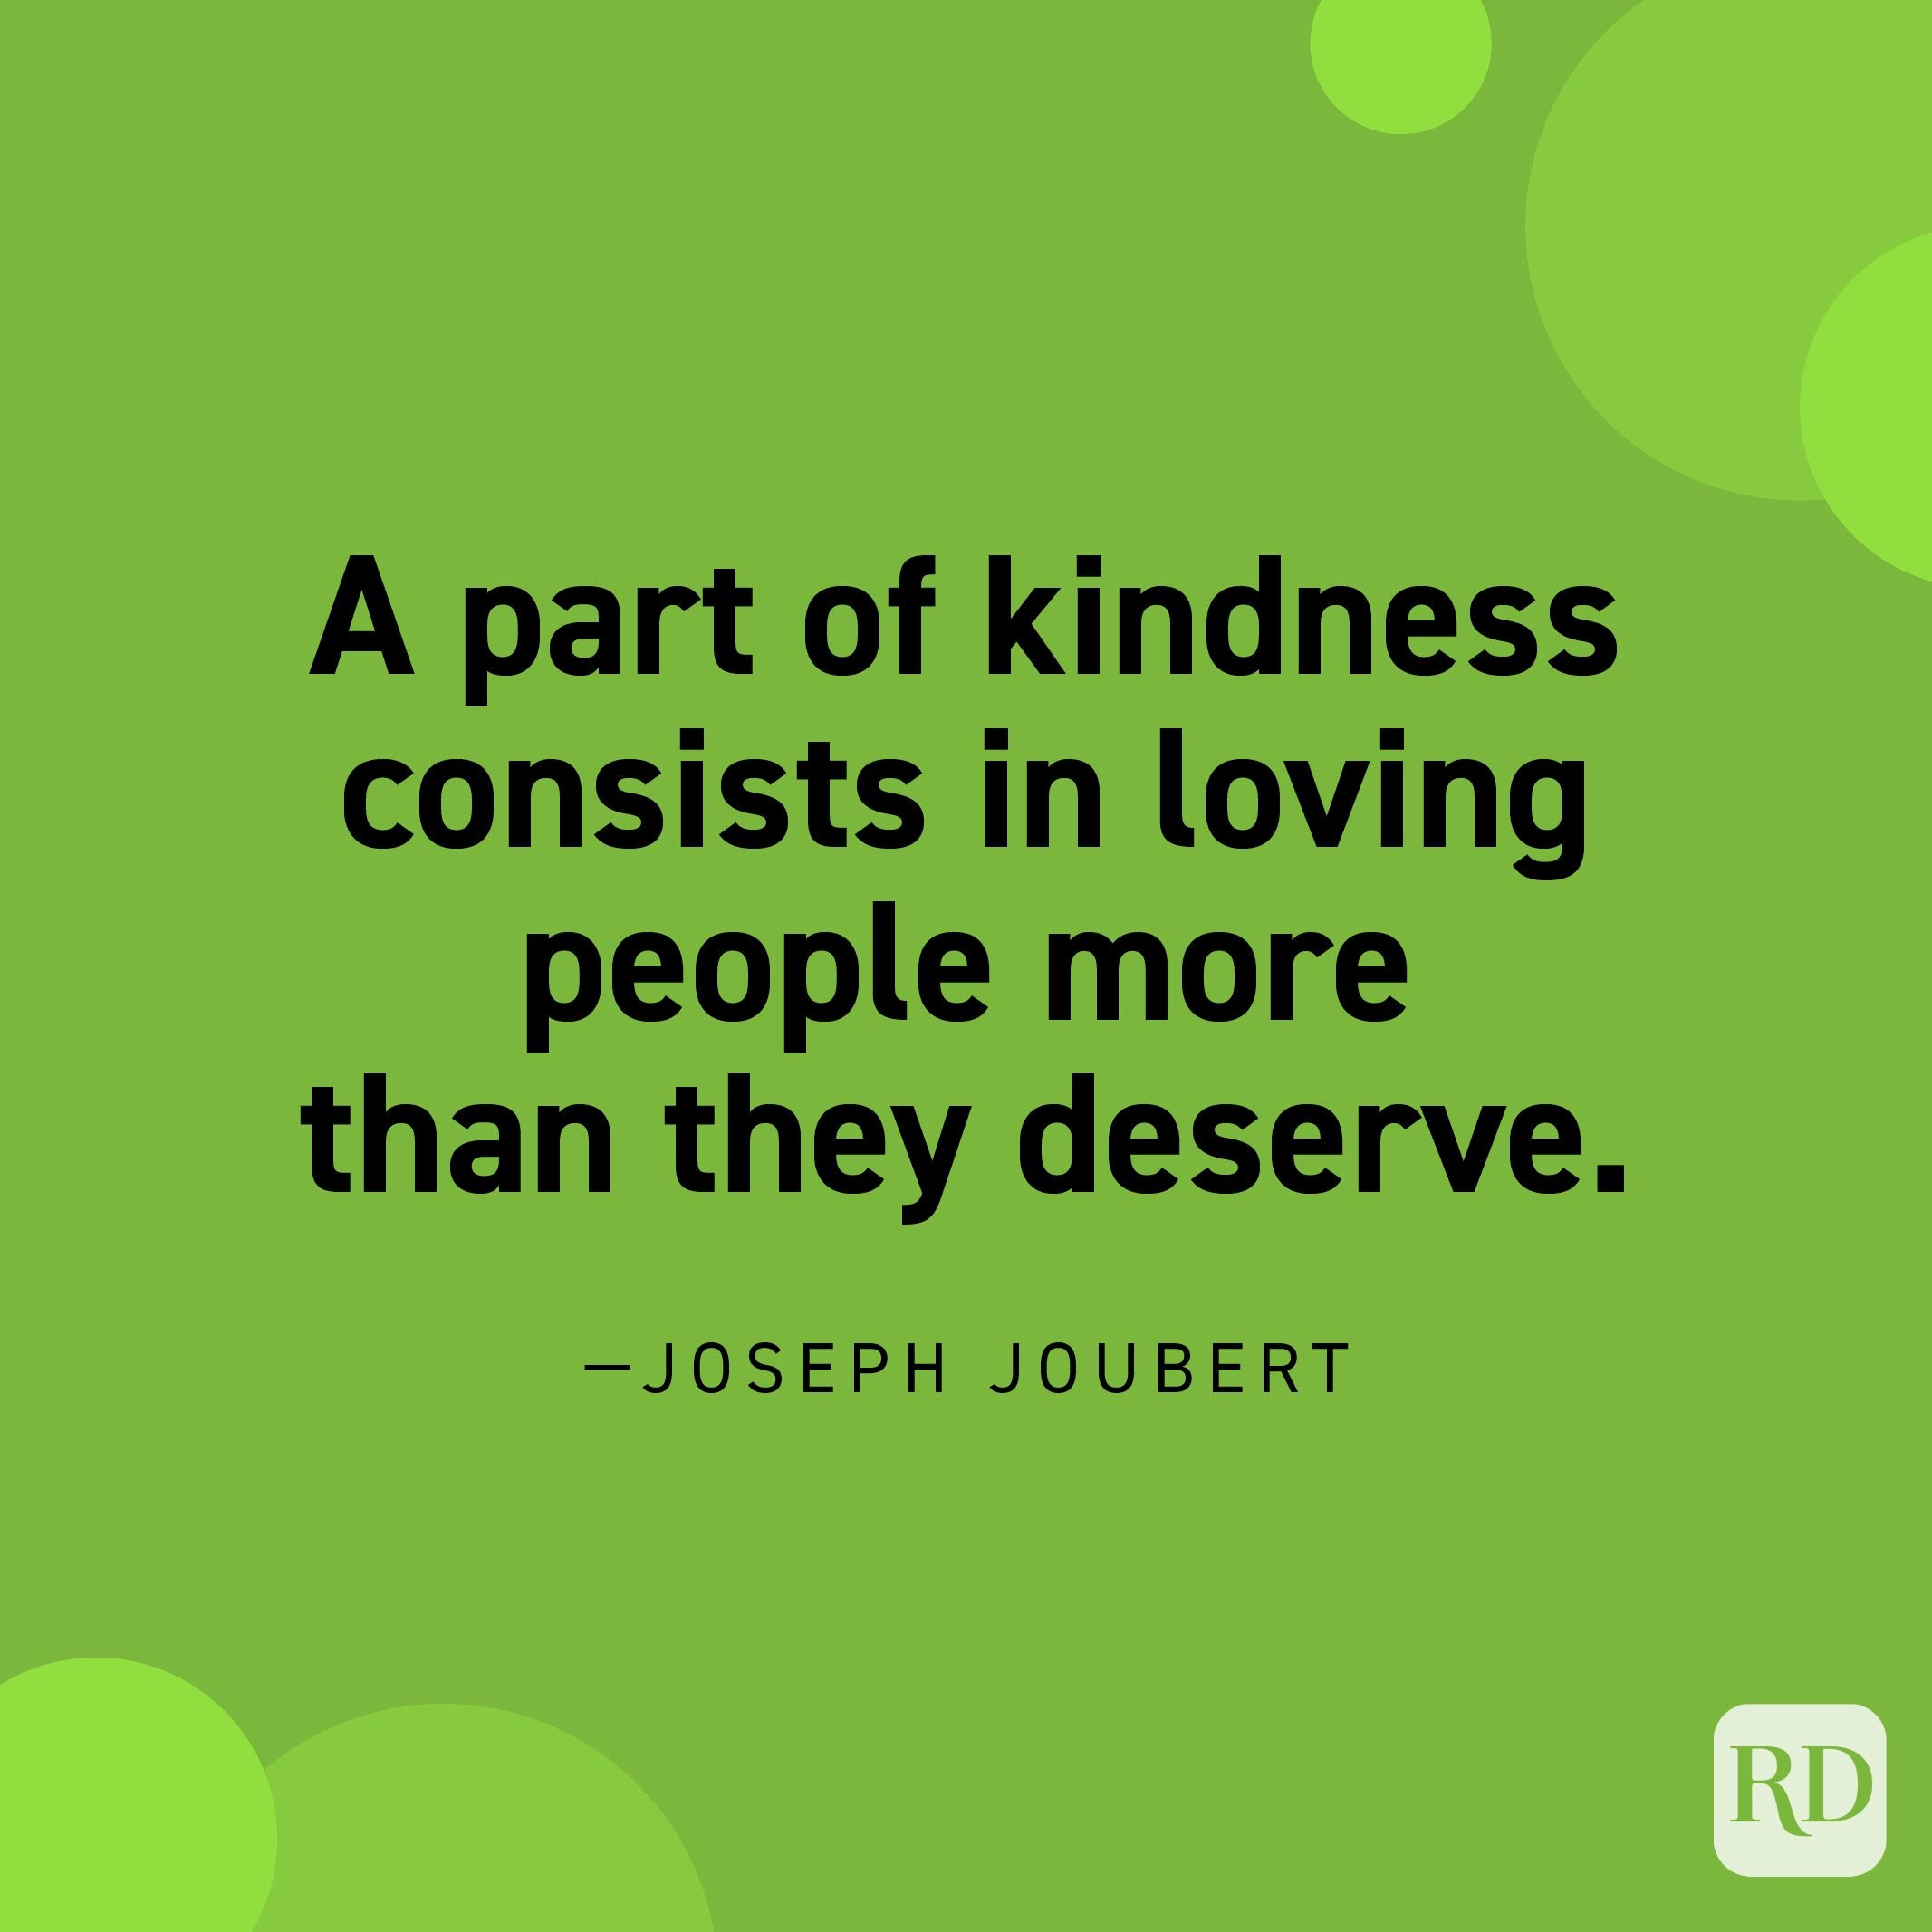 """""""A part of kindness consists in loving people more than they deserve."""" —Joseph Joubert"""